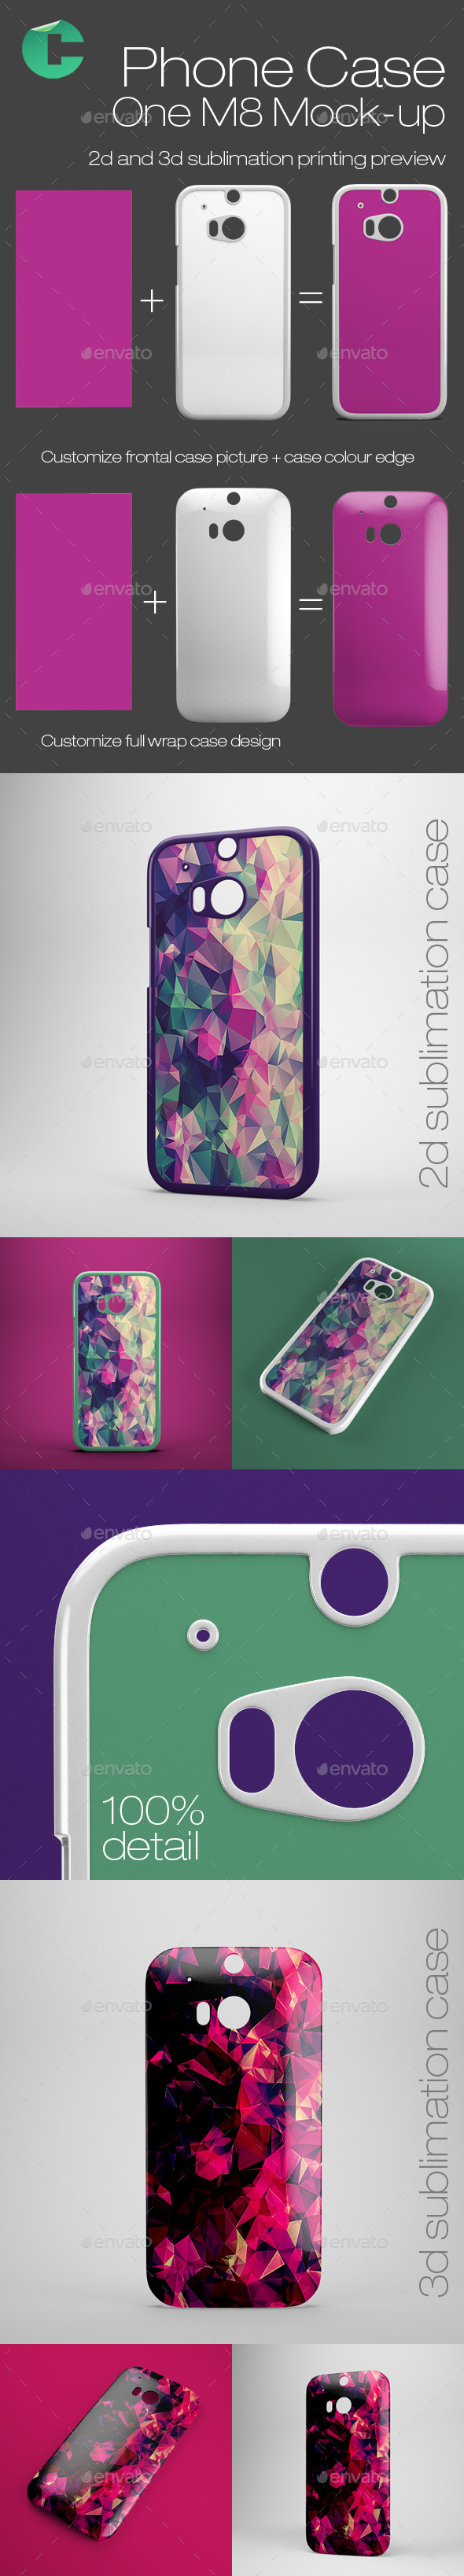 GraphicRiver Phone Case One M8 Mock-Up 9460359